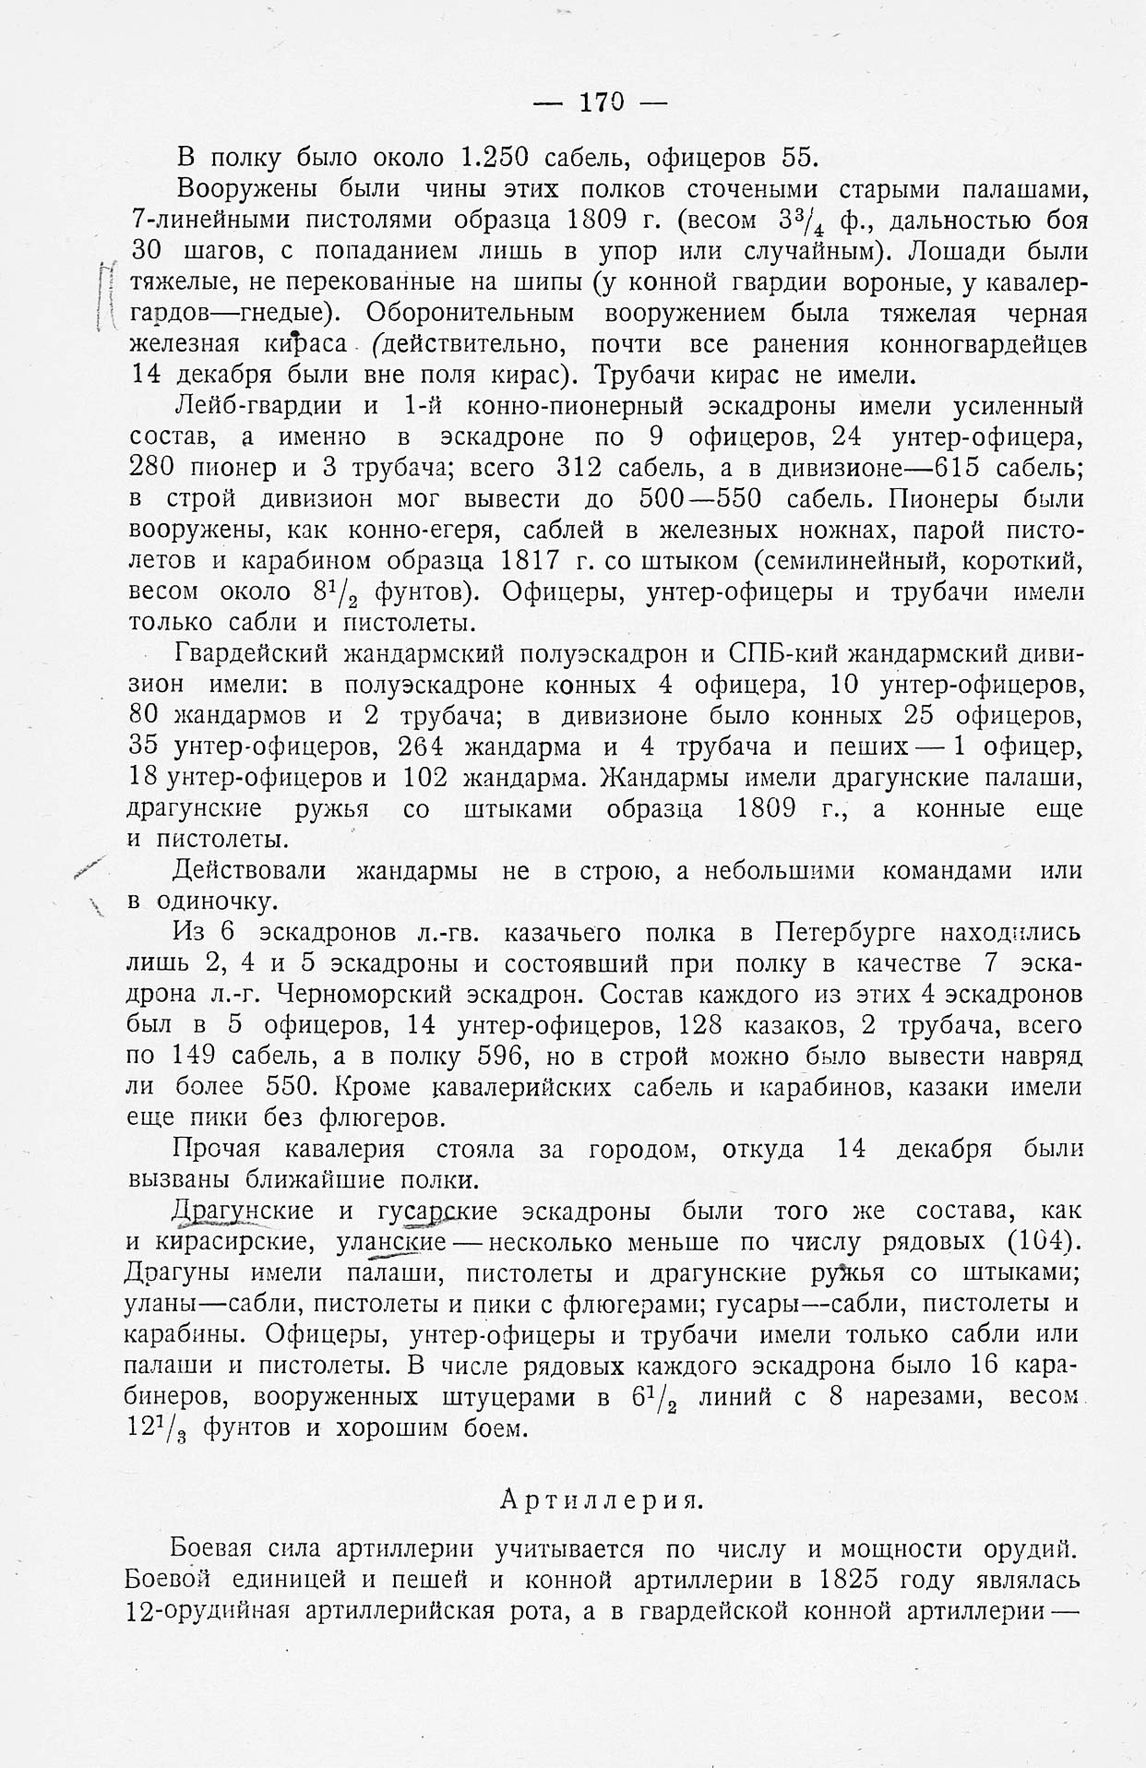 http://elib.shpl.ru/pages/566067/zooms/7